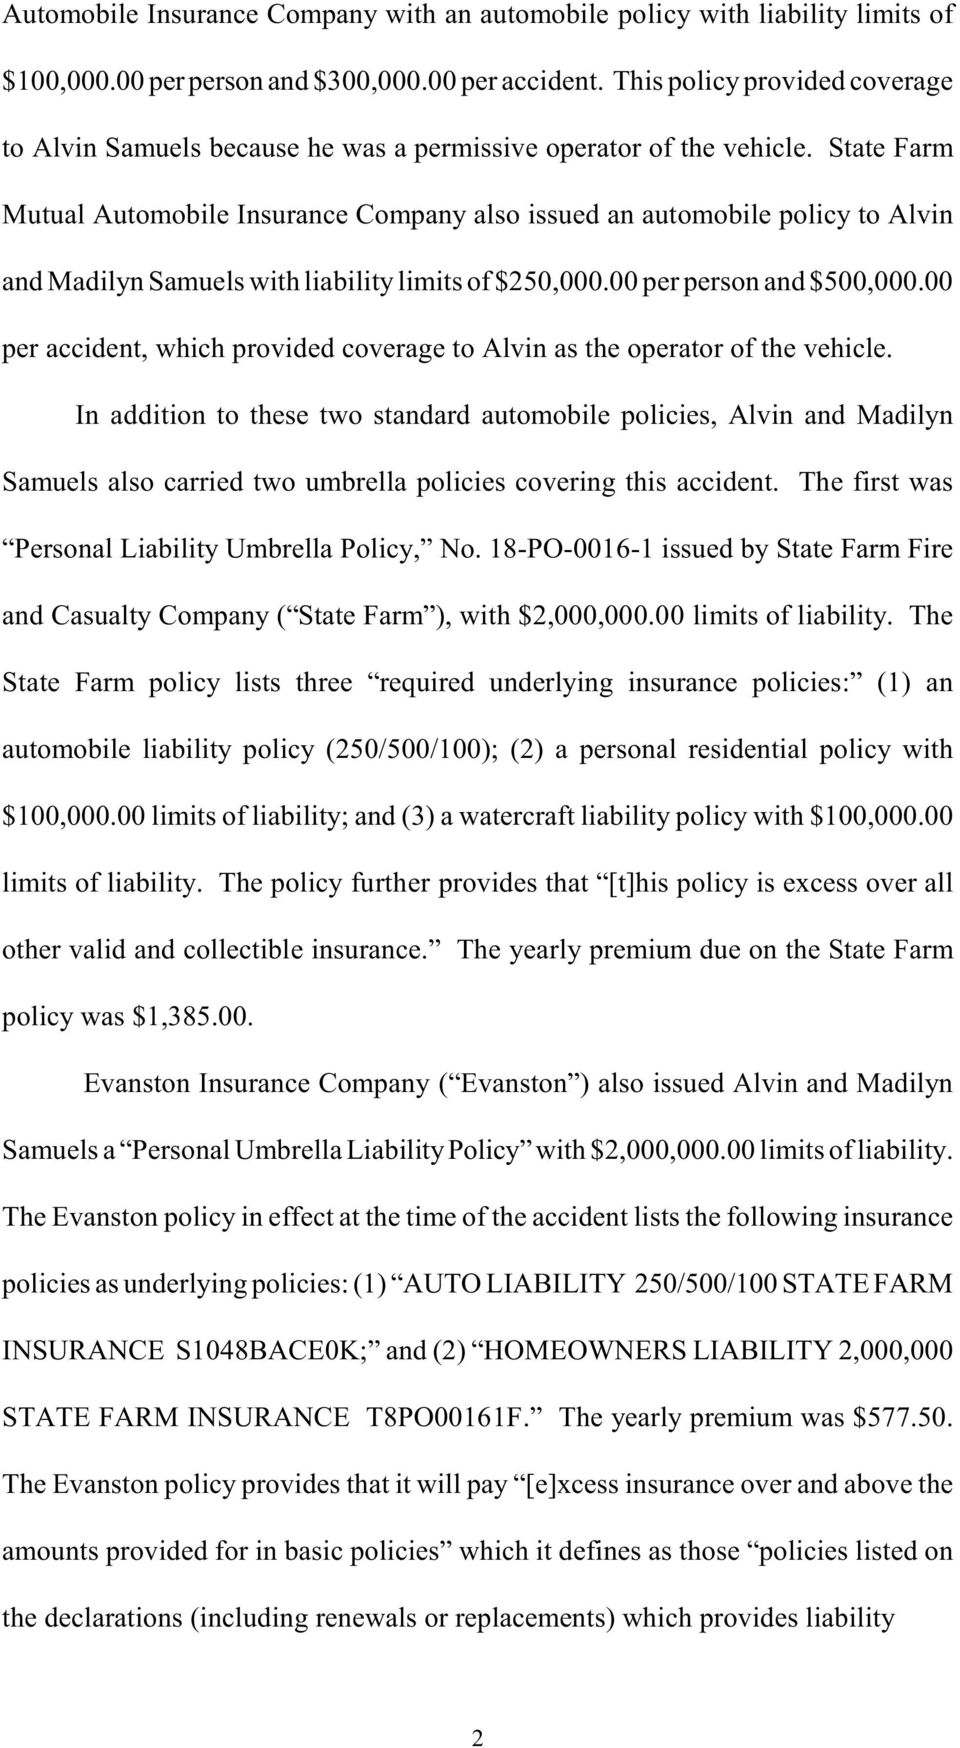 State Farm Mutual Automobile Insurance Company also issued an automobile policy to Alvin and Madilyn Samuels with liability limits of $250,000.00 per person and $500,000.